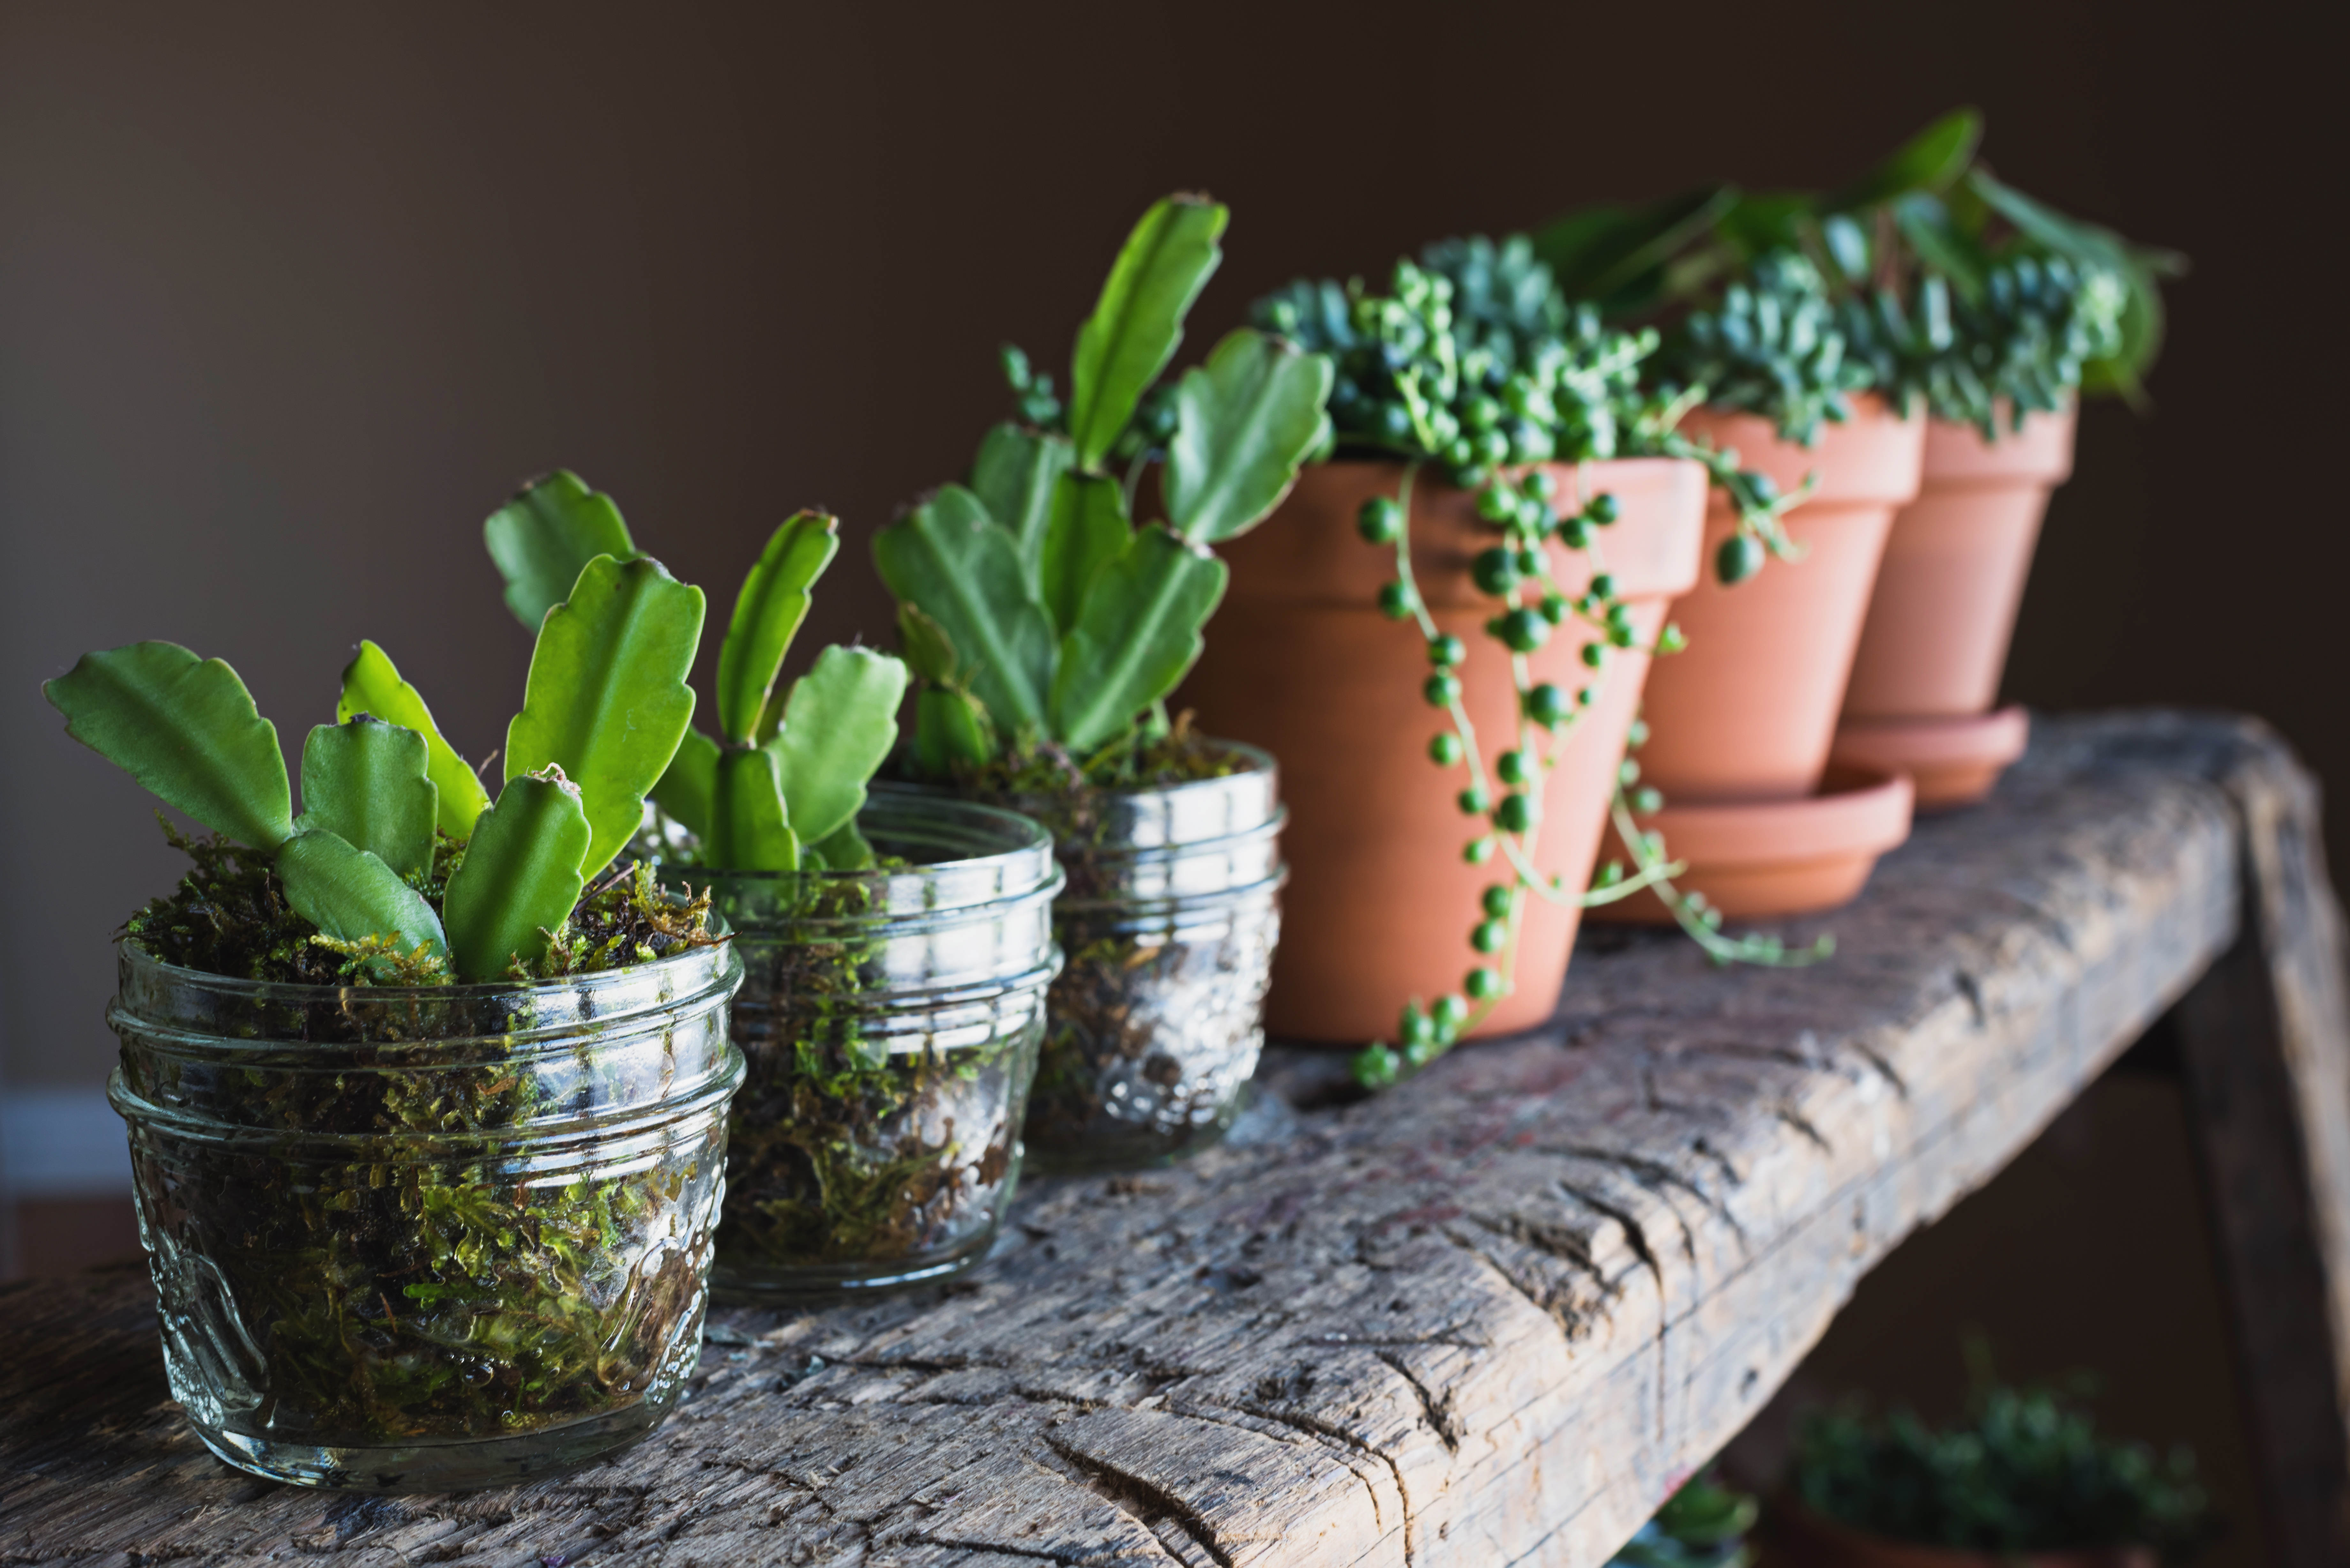 What Kind Of Soil Should I Use To Grow A Christmas Cactus